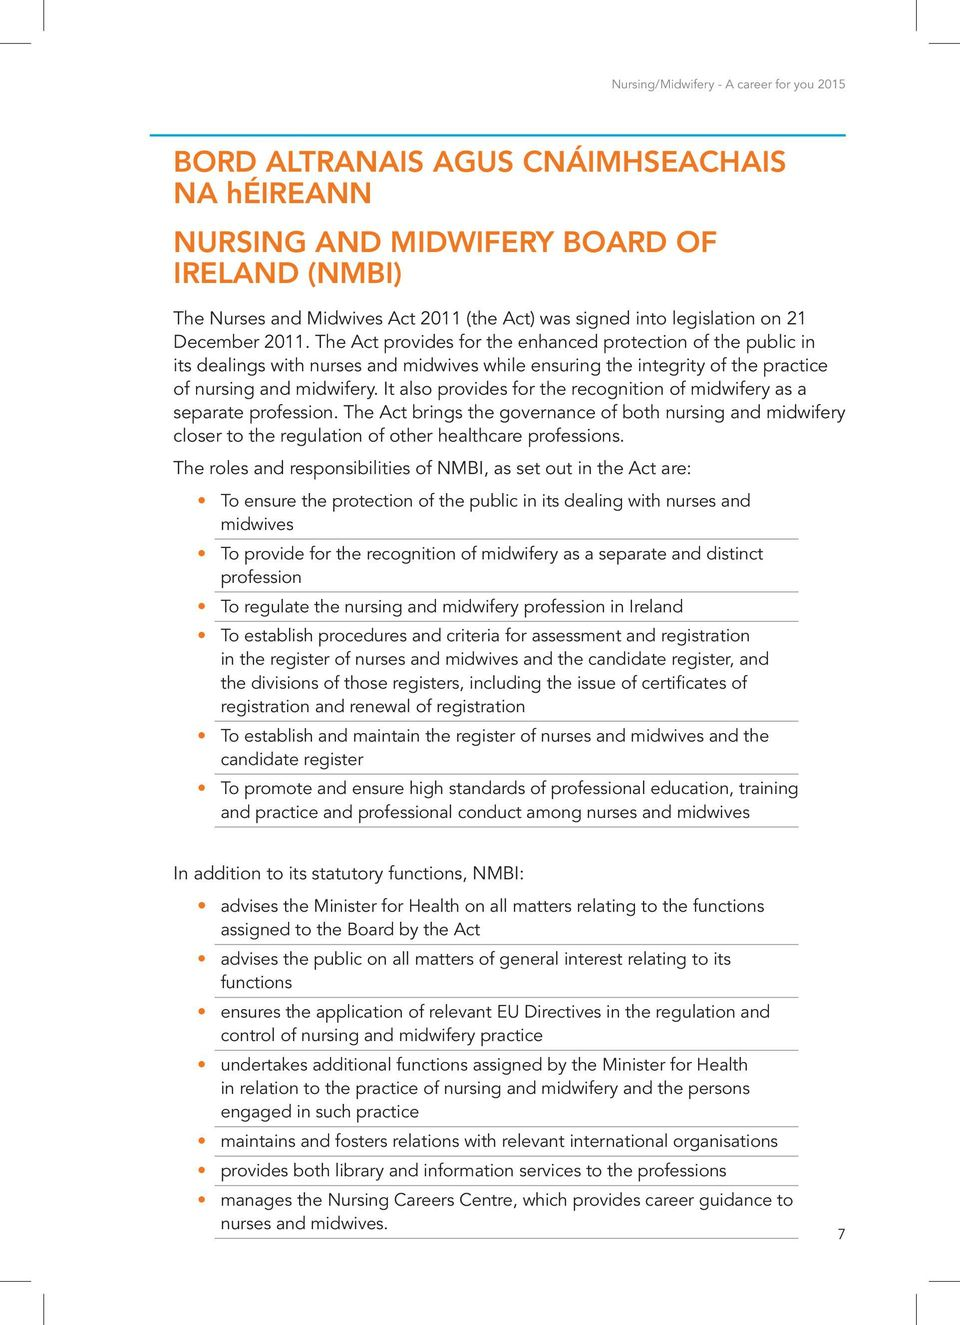 It also provides for the recognition of midwifery as a separate profession. The Act brings the governance of both nursing and midwifery closer to the regulation of other healthcare professions.